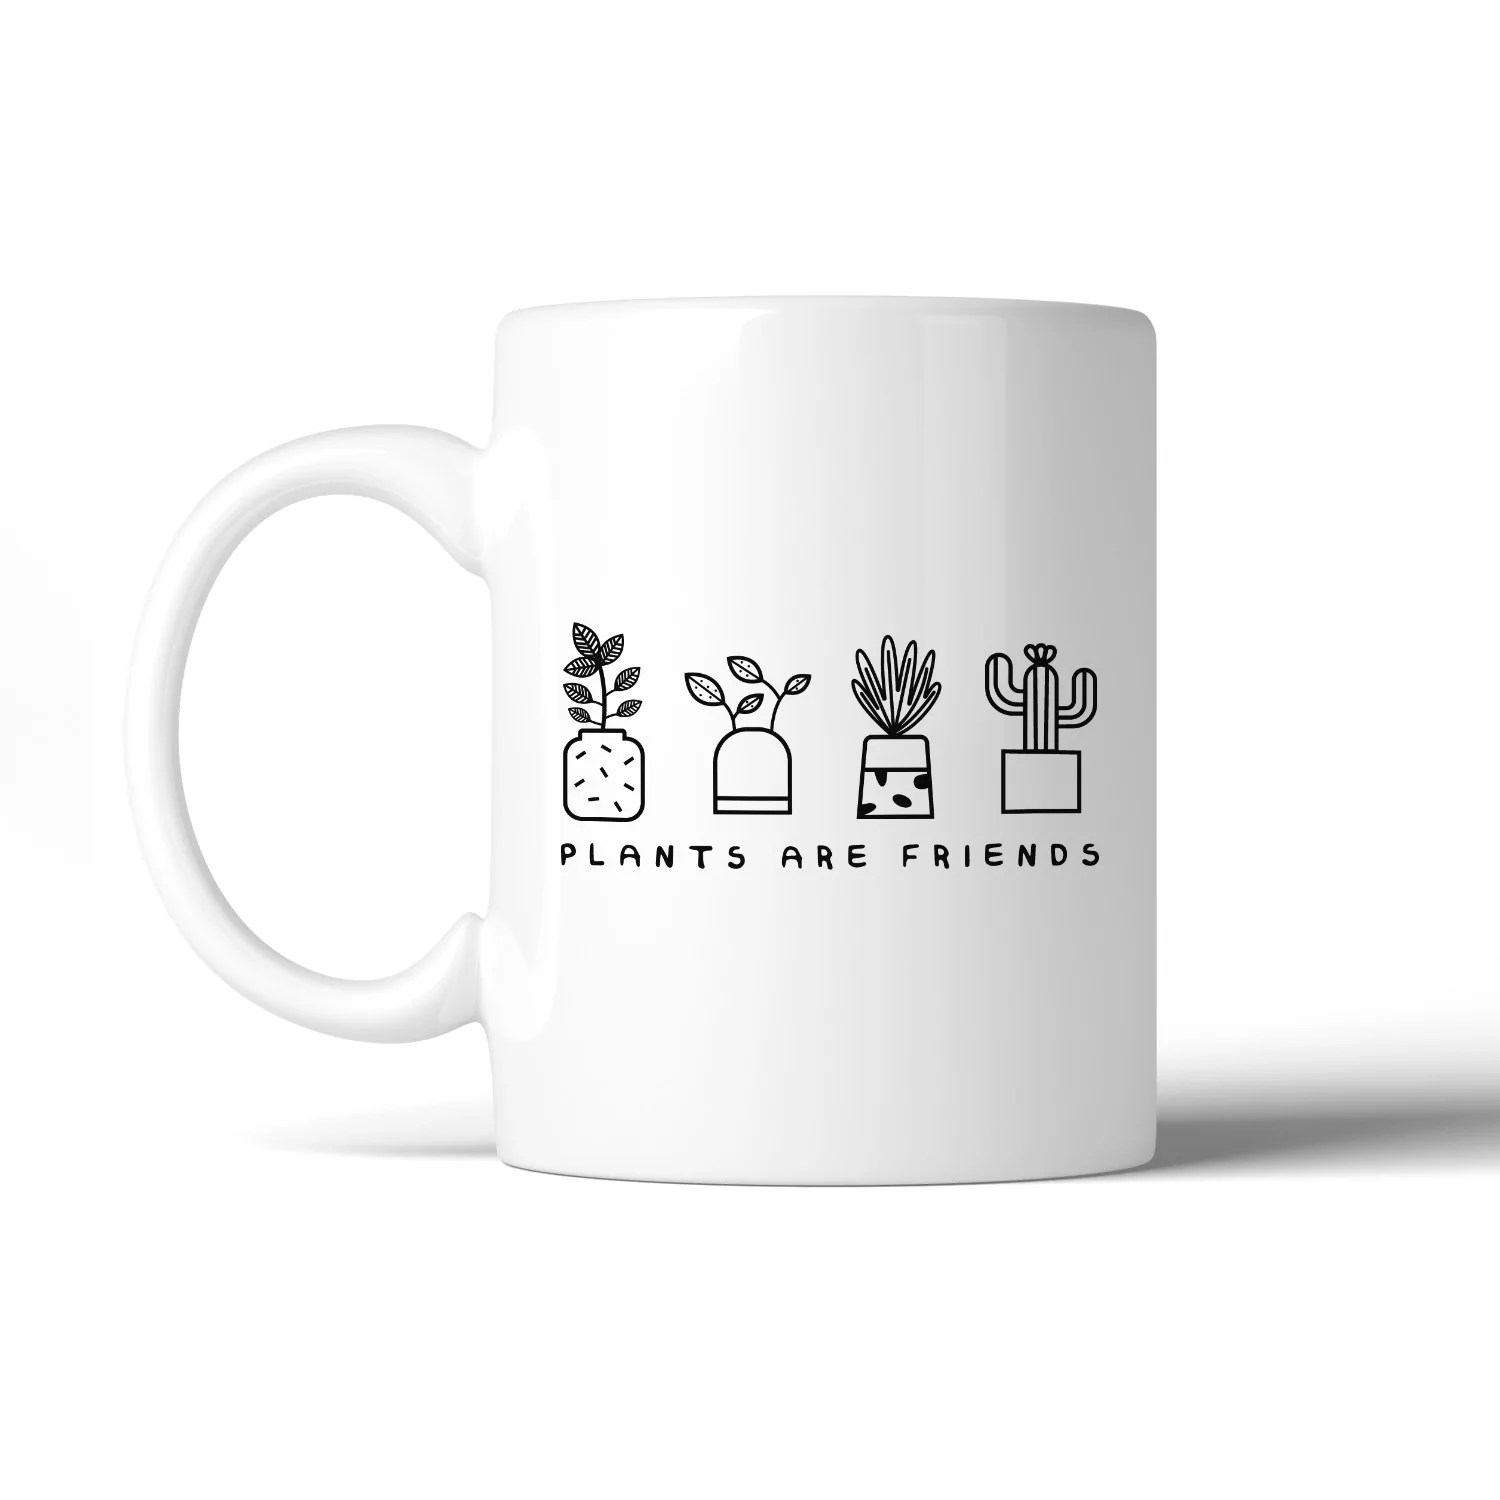 Plants Are Friends Cute Design Coffee Mug Gift Idea For